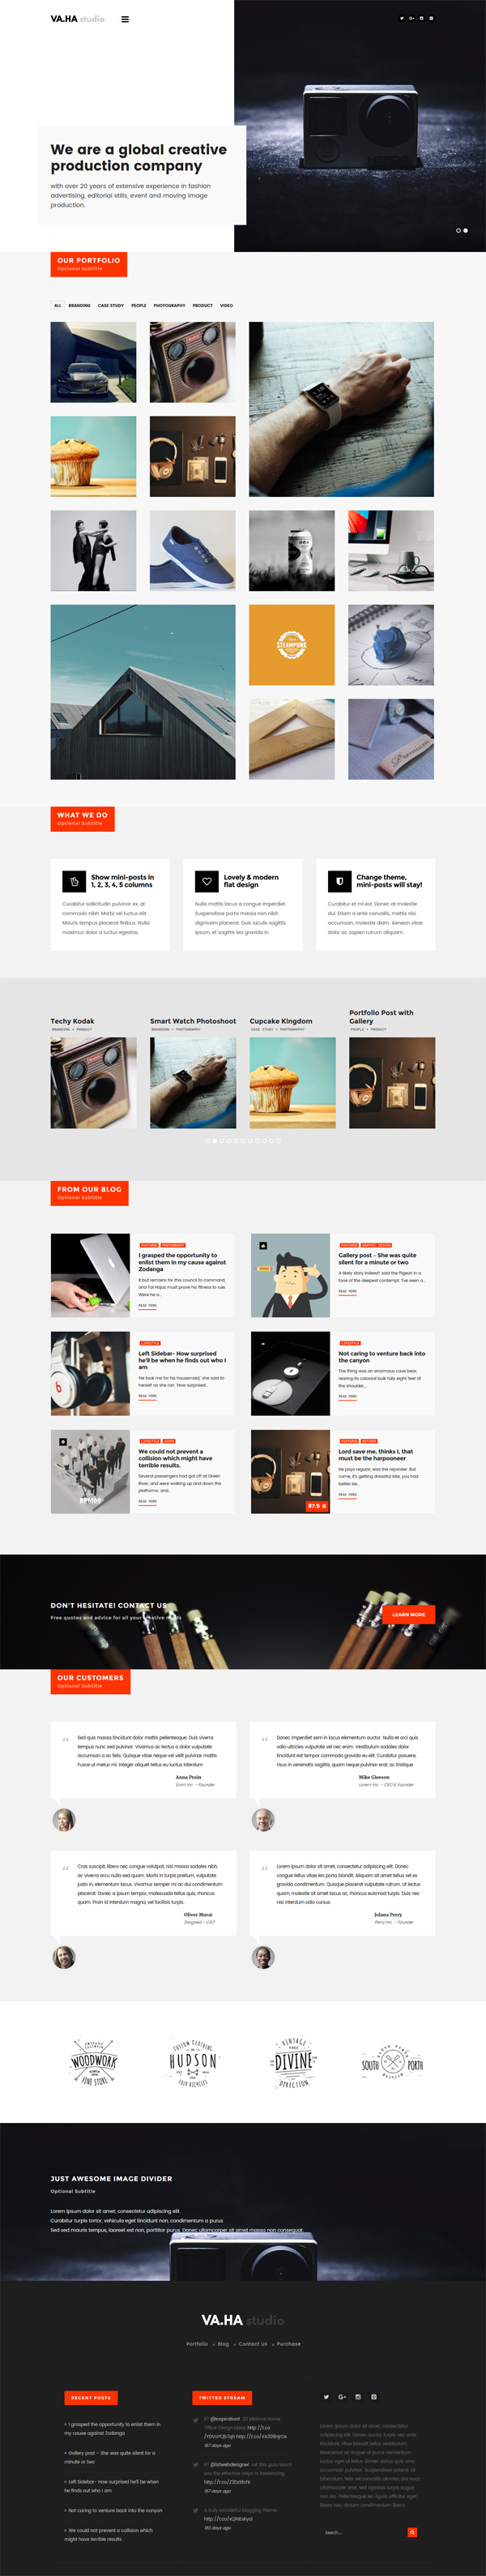 VaHa - Agency / Portfolio / Studio WordPress Theme